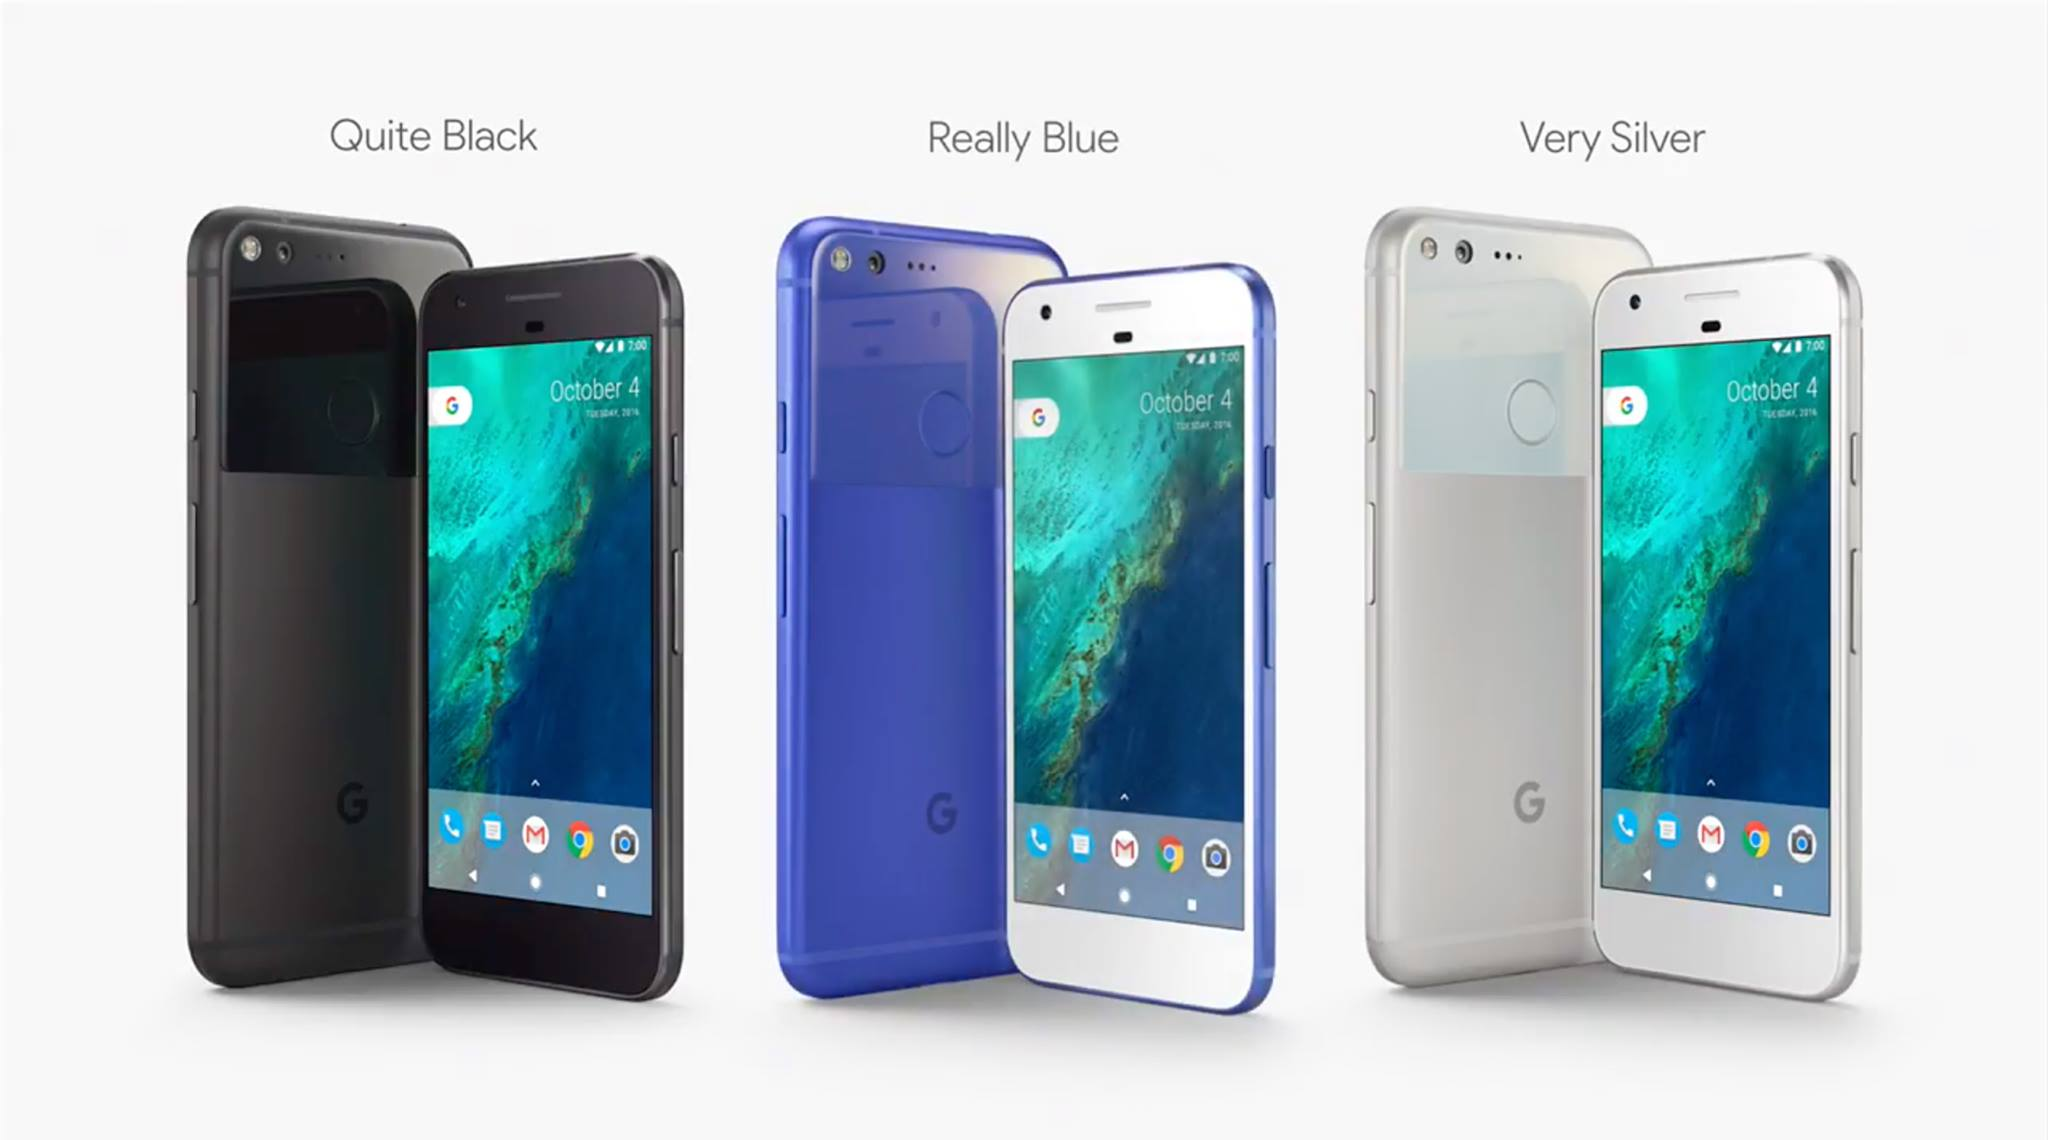 Google Pixel available on Flipkart at a price as low as Rs 24,000